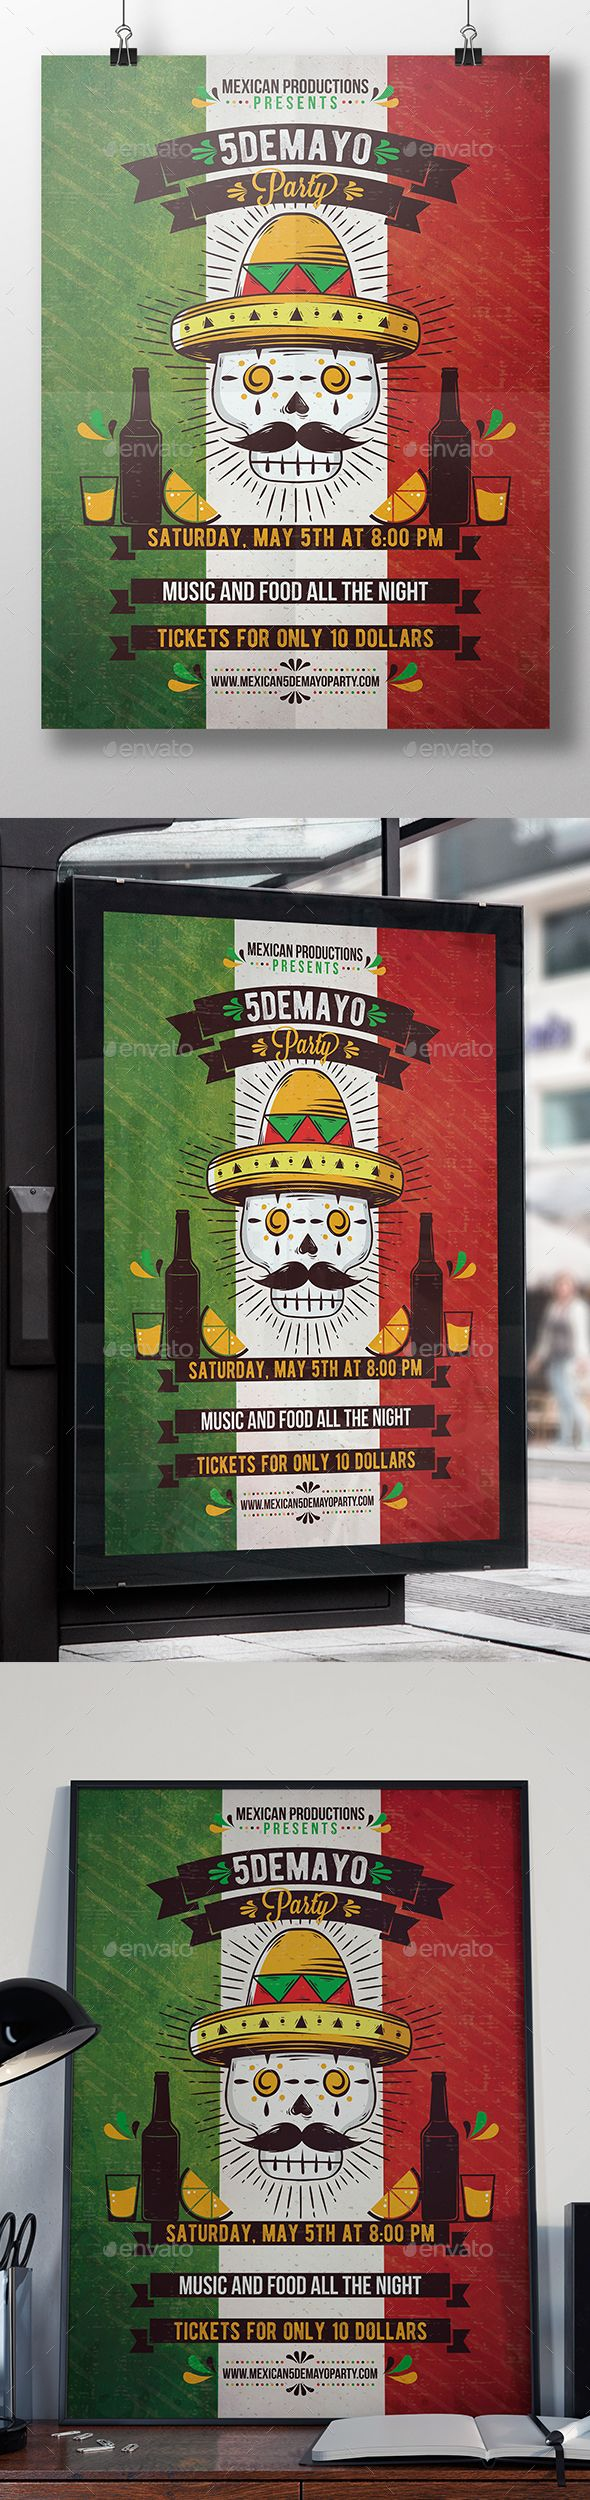 Mexican Calaca Flyer Template — Photoshop PSD #carnival #Cinco de Mayo • Available here → https://graphicriver.net/item/mexican-calaca-flyer-template/19858208?ref=pxcr